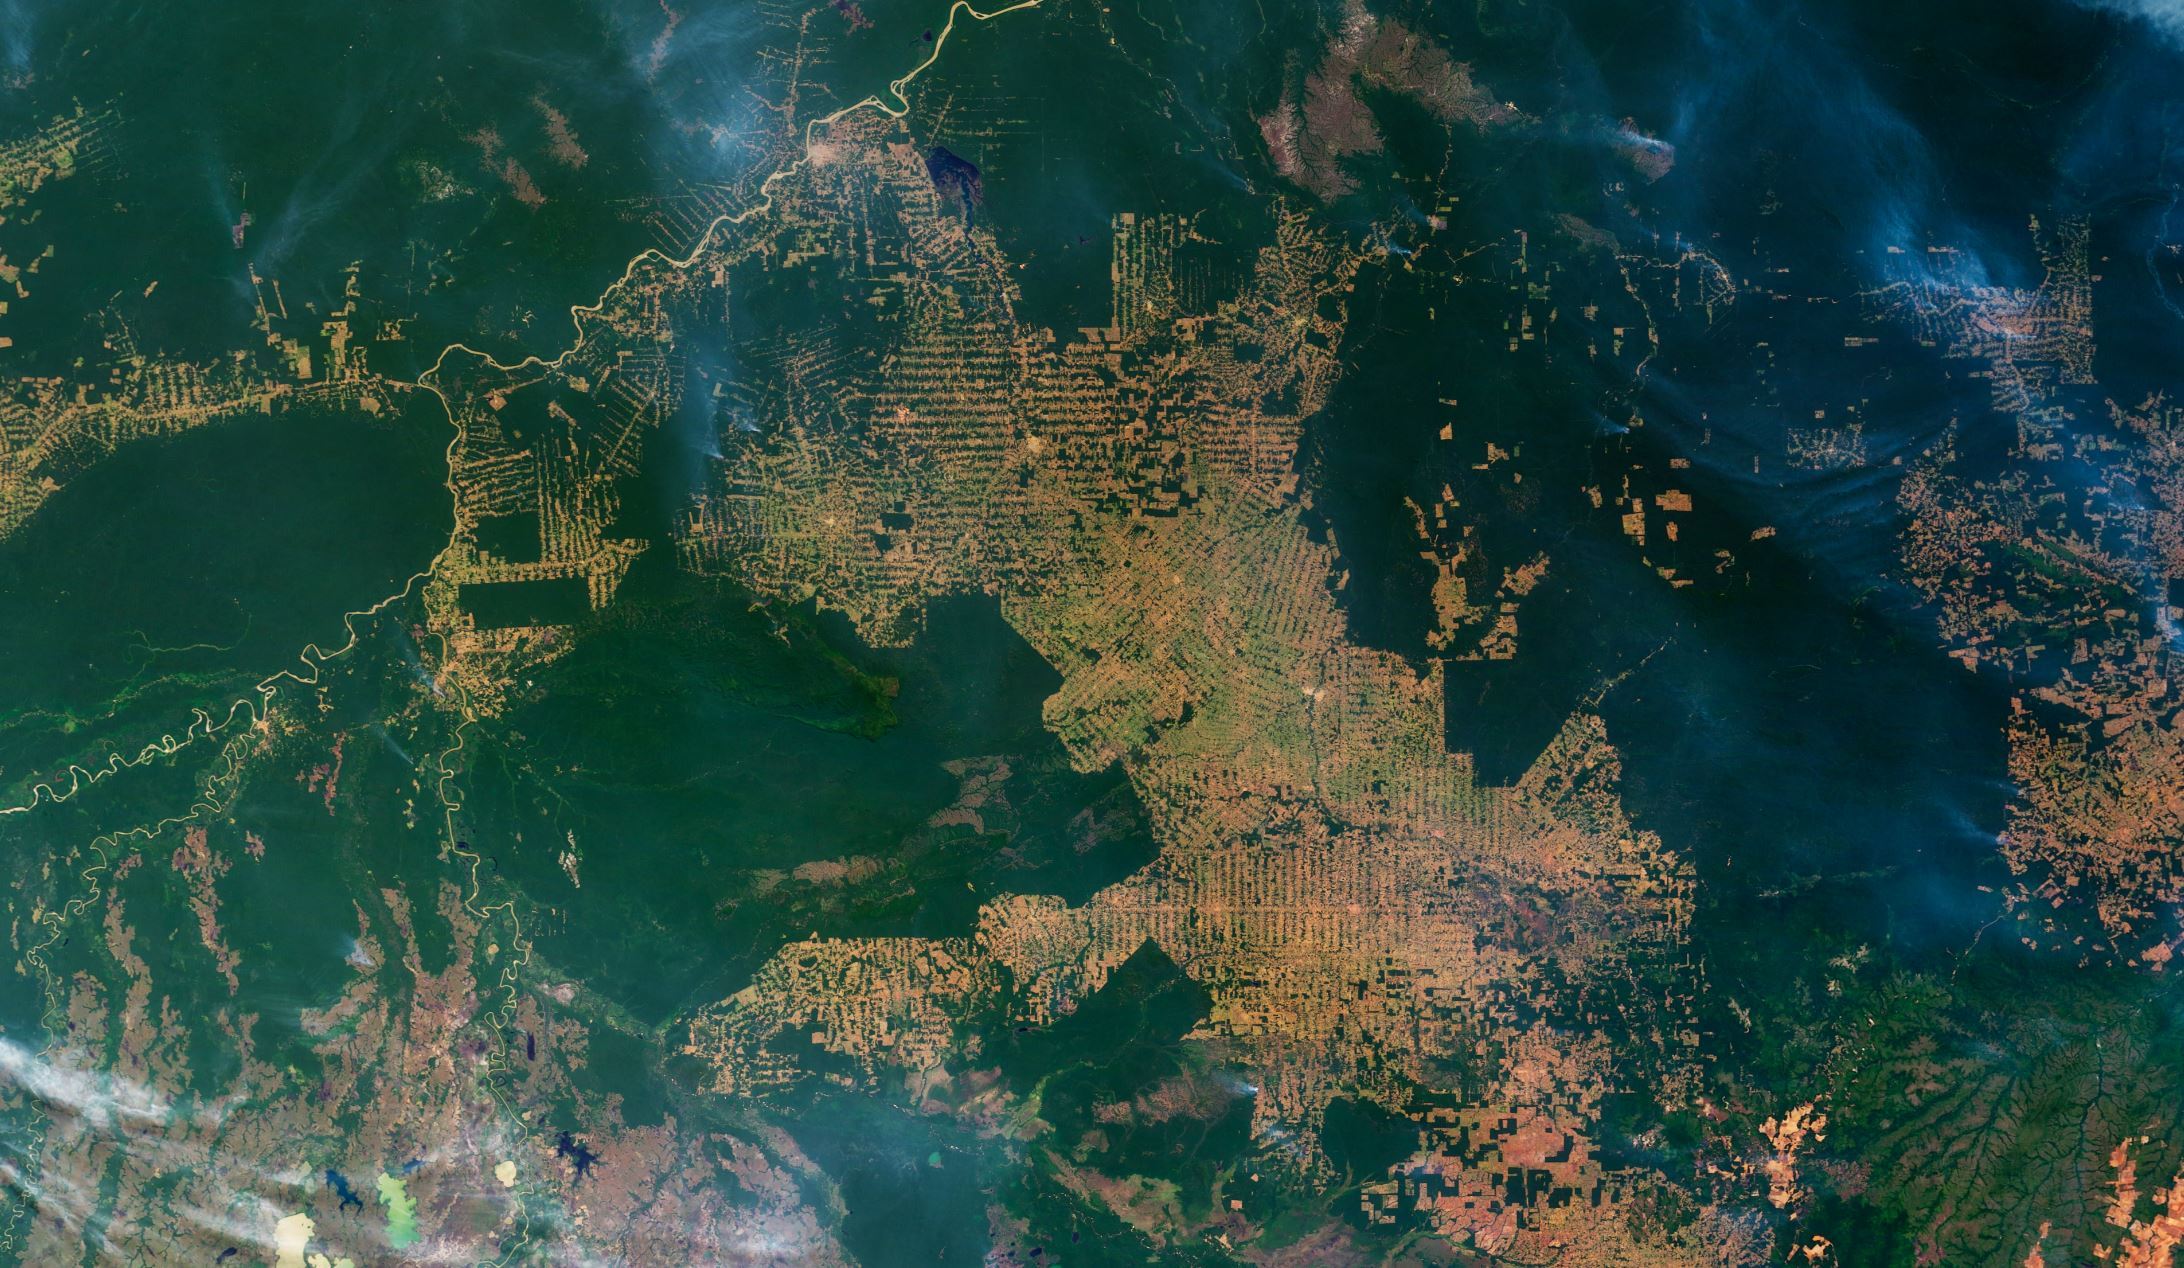 In this image, intact forest is deep green, while cleared areas are tan (bare ground) or light green (crops, pasture, or occasionally, second-growth forest). The fish bone pattern of small clearings along new roads is the beginning of one of the common deforestation trajectories in the Amazon. (2007 image) Image Credit:  NASA Earth Observatory via Wikimedia Commons  - HDR tune  Universal-Sci